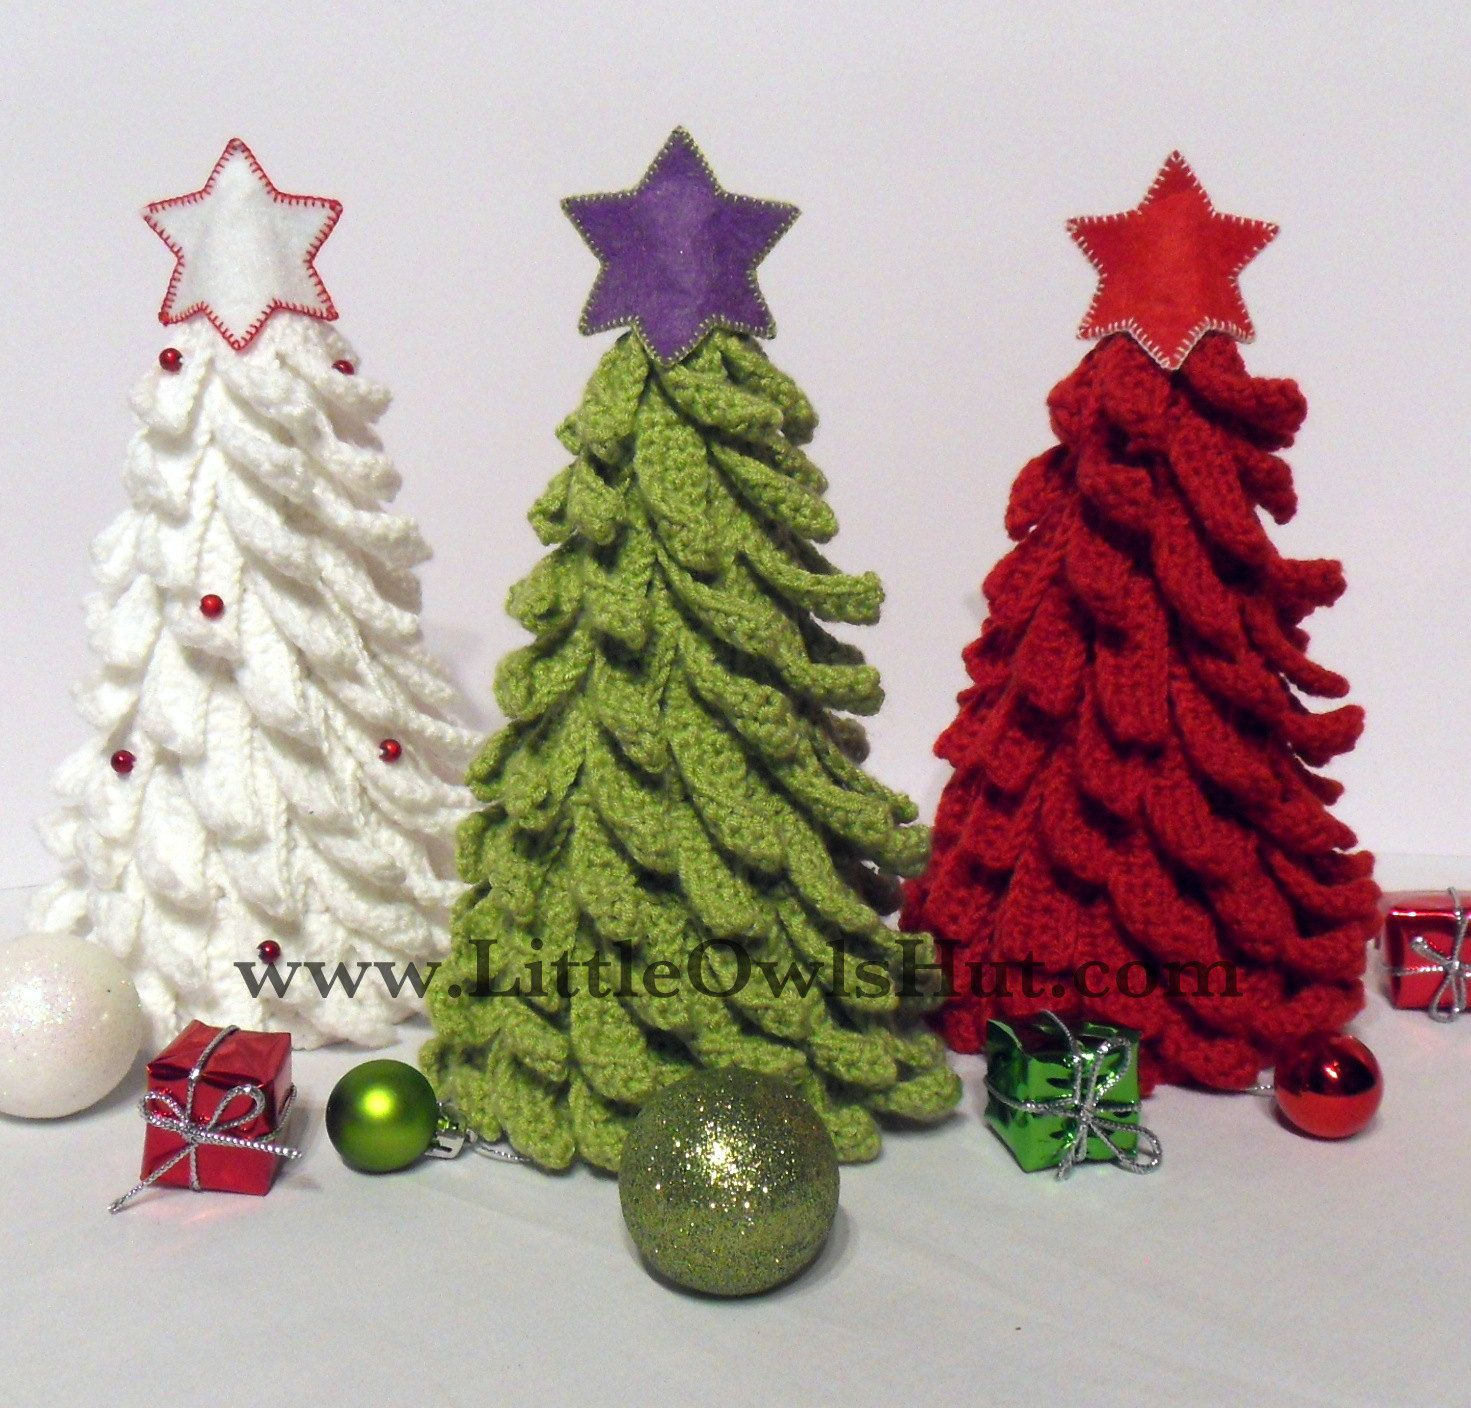 Crochet christmas tree pattern 910 tall 450 via etsy crochet christmas tree pattern 910 tall bankloansurffo Image collections